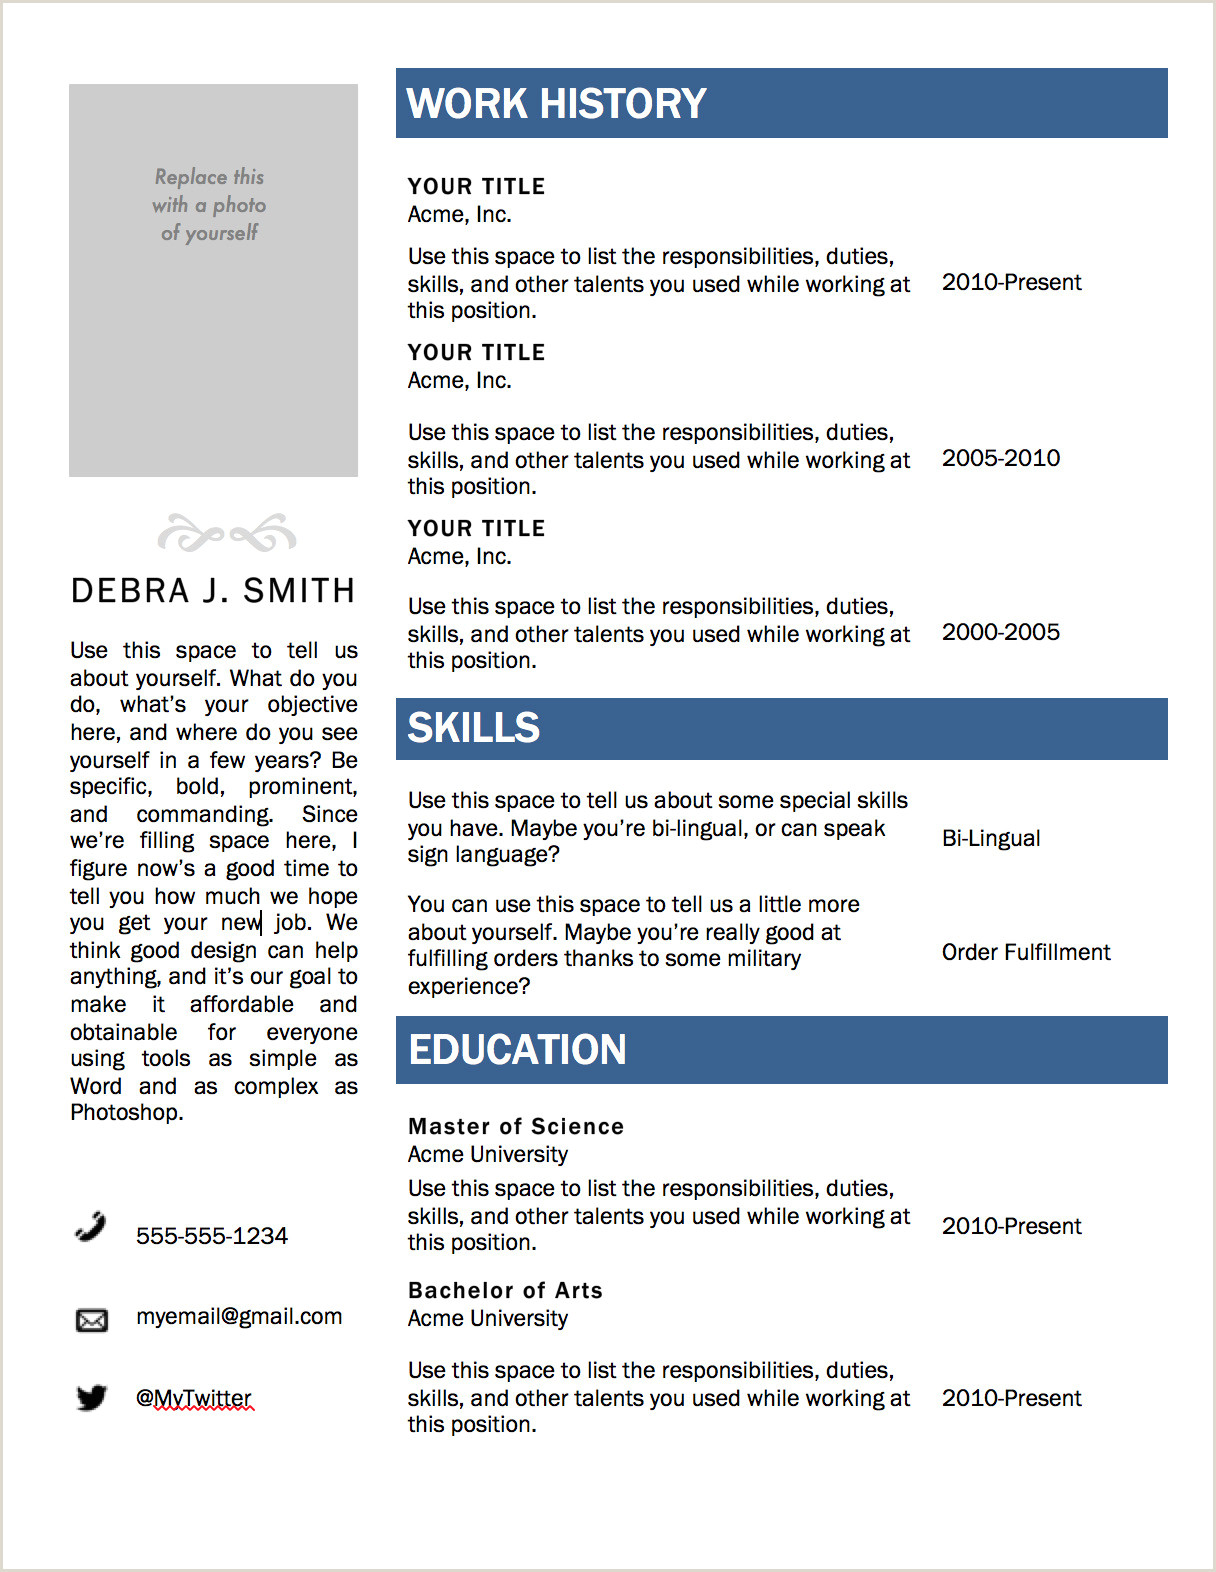 New Professional Cv format 2019 Template Ideas Free Microsoft Resume Templates Marvelous